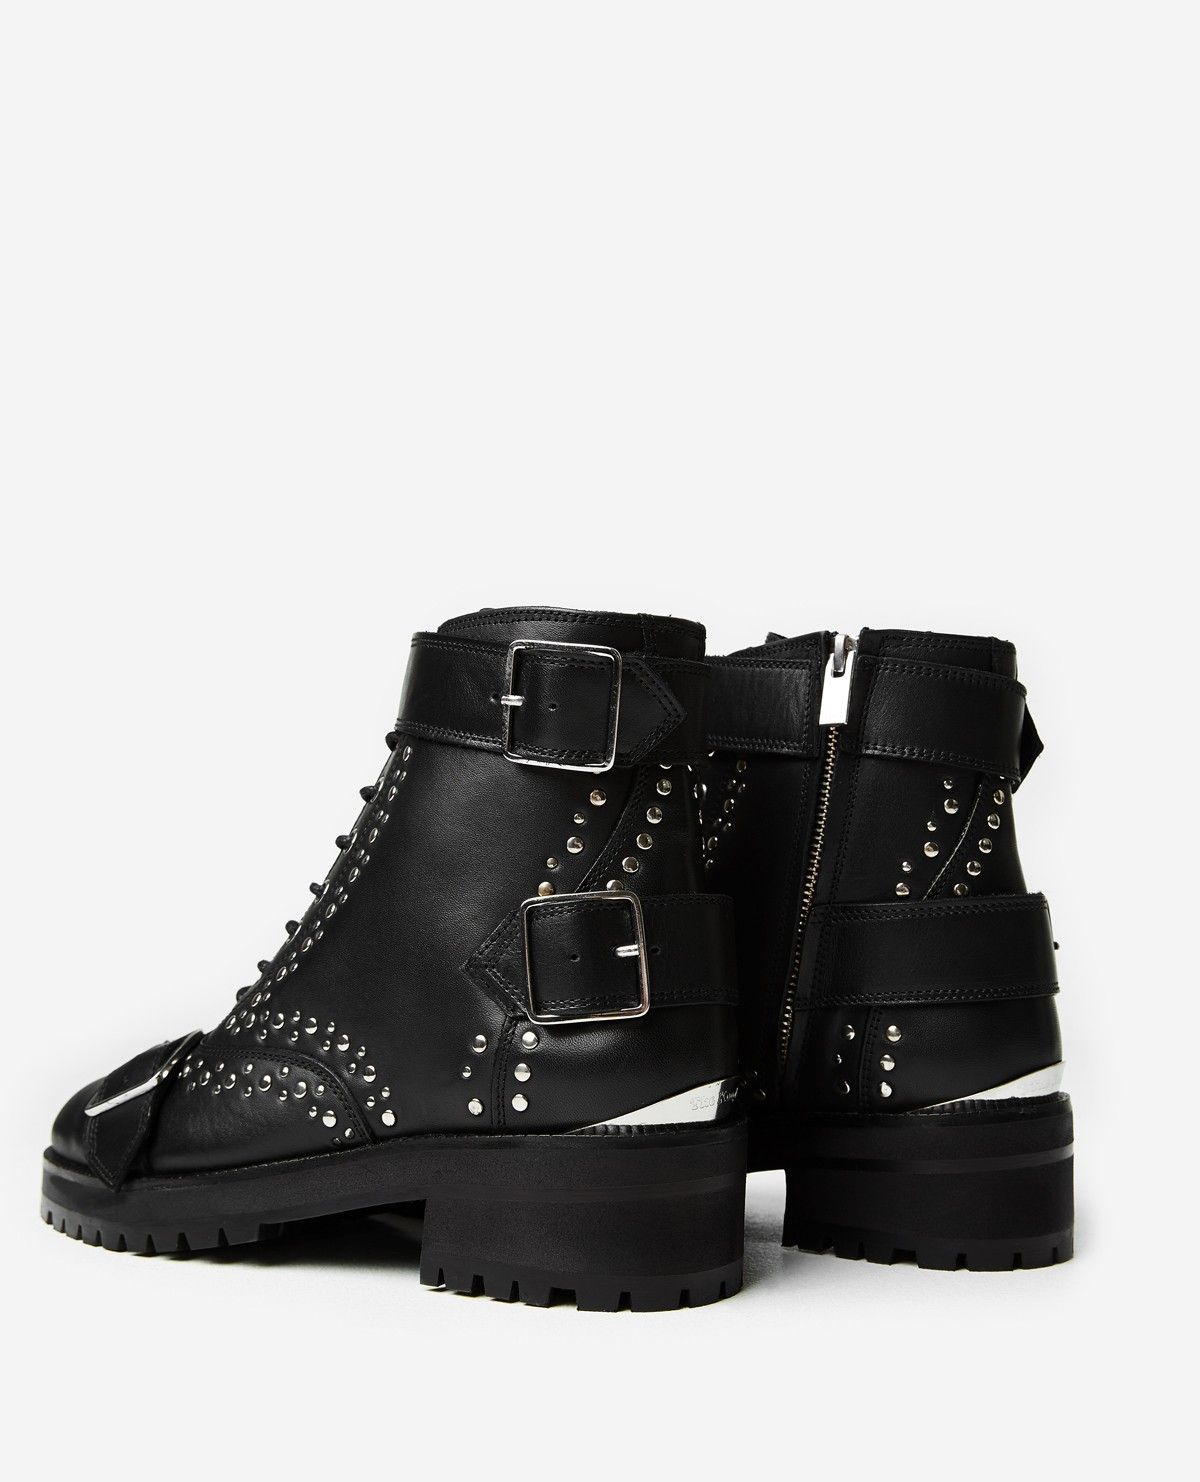 Black leather lace-up studded ankle boots - THE KOOPLES